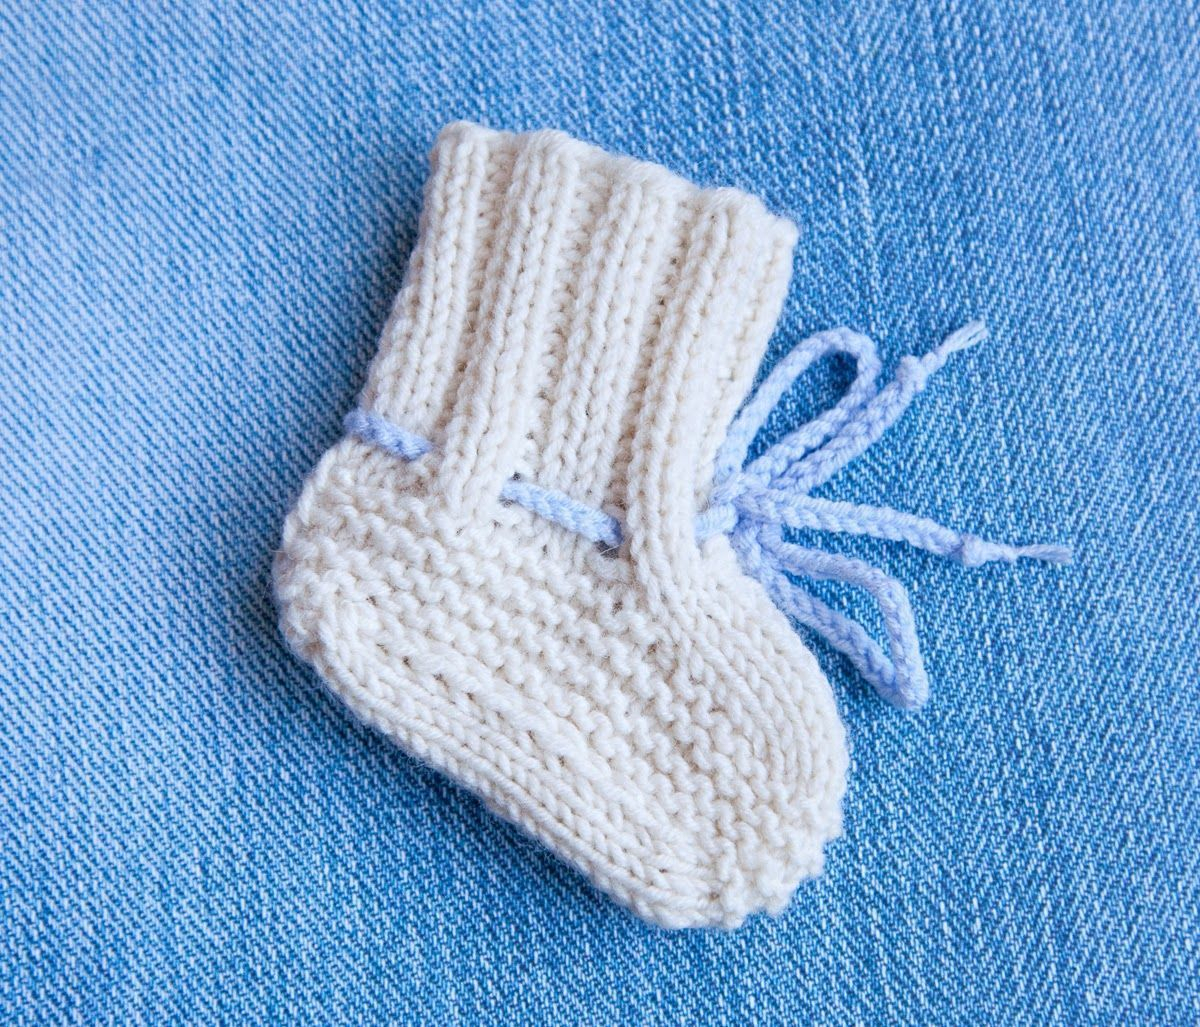 Basic Baby Booties Knitting Pattern Topic For Directions For Knit Ba Booties Crochet Plaid Cuff Ba